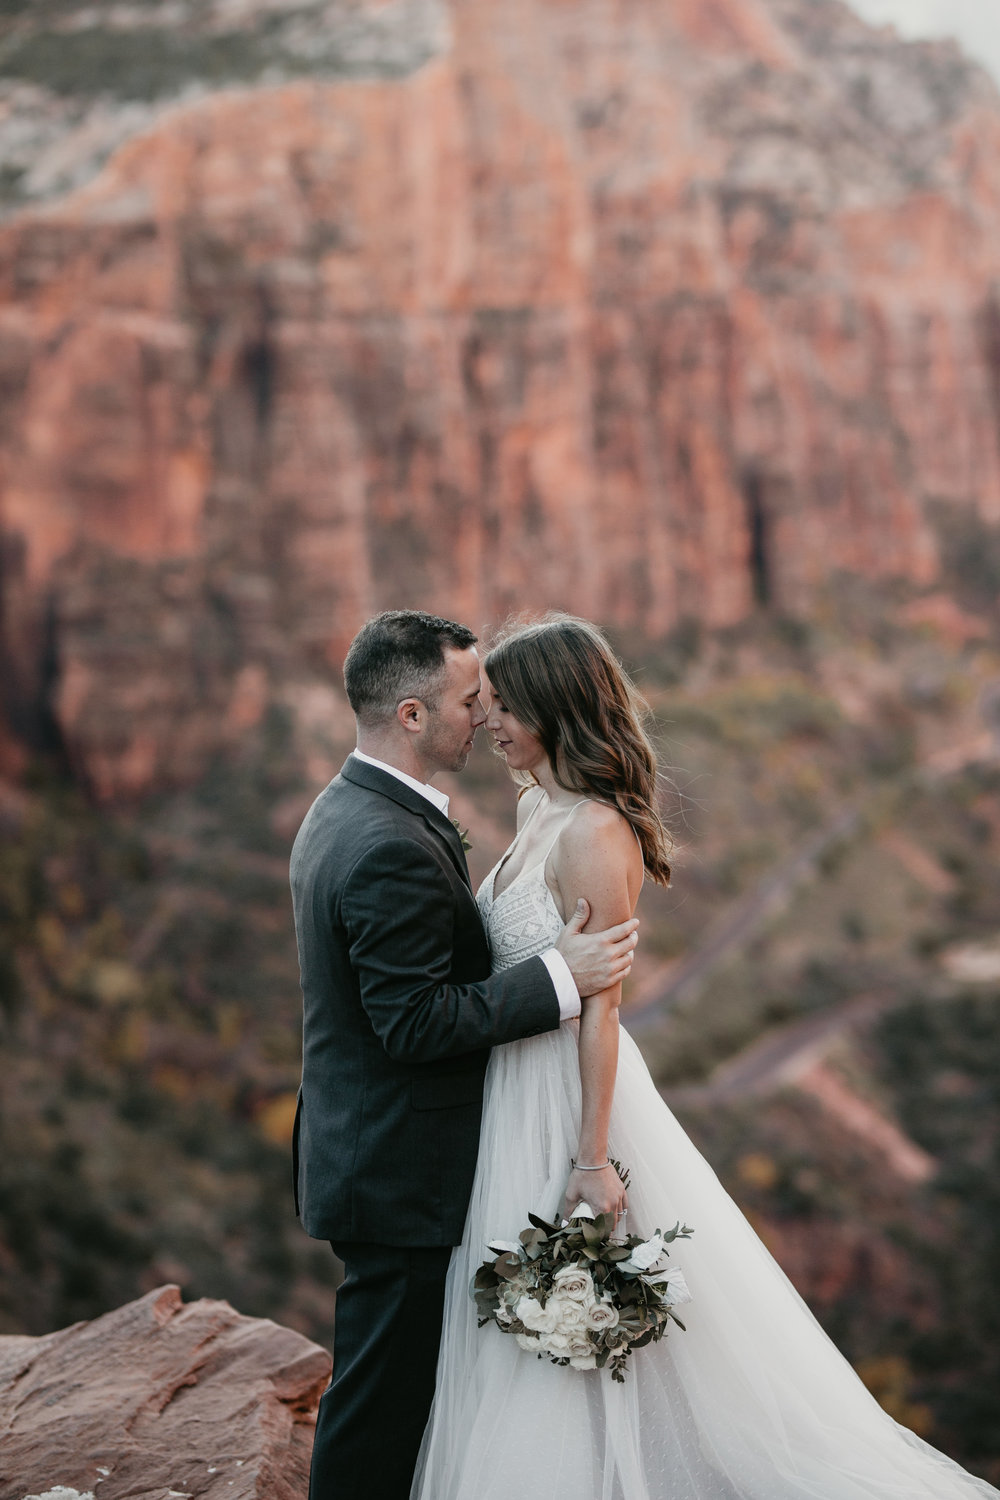 nicole-daacke-photography-zion-national-park-elopement-photographer-canyon-overlook-trail-elope-hiking-adventure-wedding-photos-fall-utah-red-rock-canyon-stgeorge-eloping-photographer-42.jpg